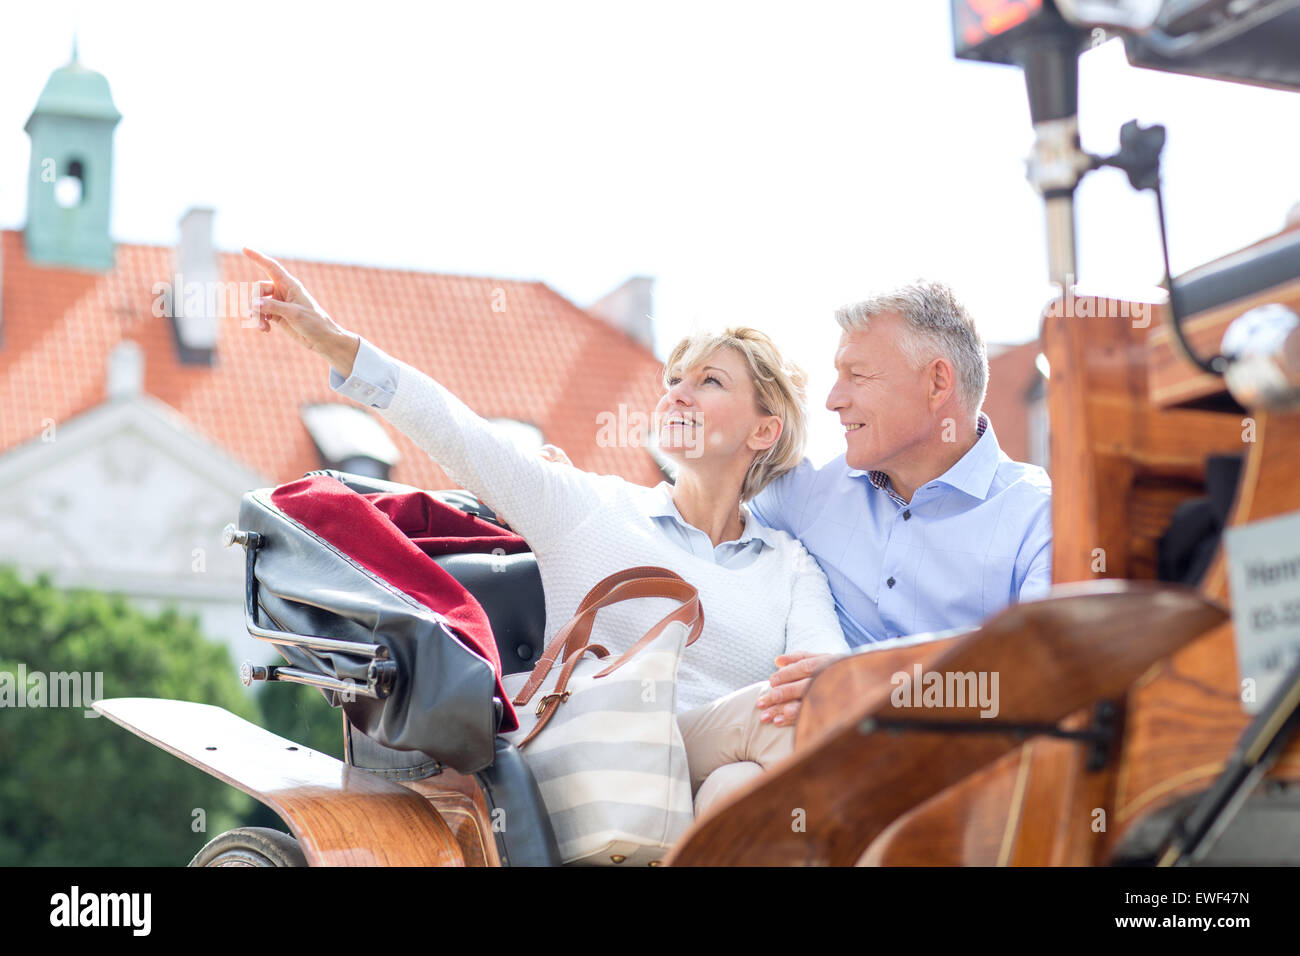 Middle-aged woman showing something to man while sitting in horse cart - Stock Image